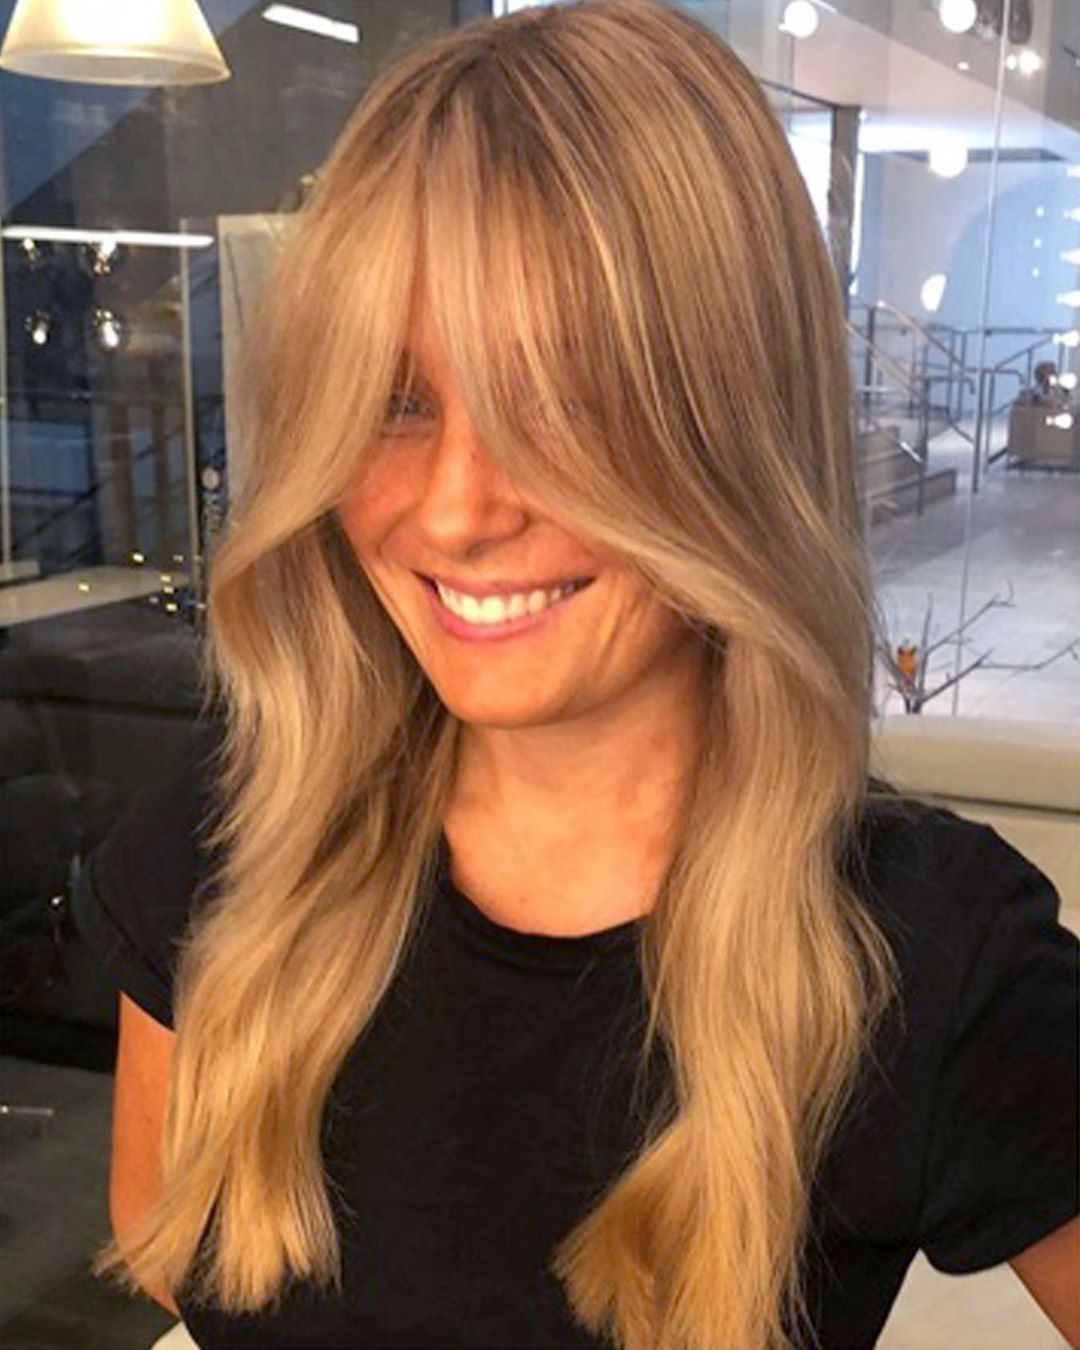 Perth Hair Salon On Instagram Curtain Fringe Realness Loving This Look By Curtain Cur Fringe Haircut Long Hair Styles Hair Styles